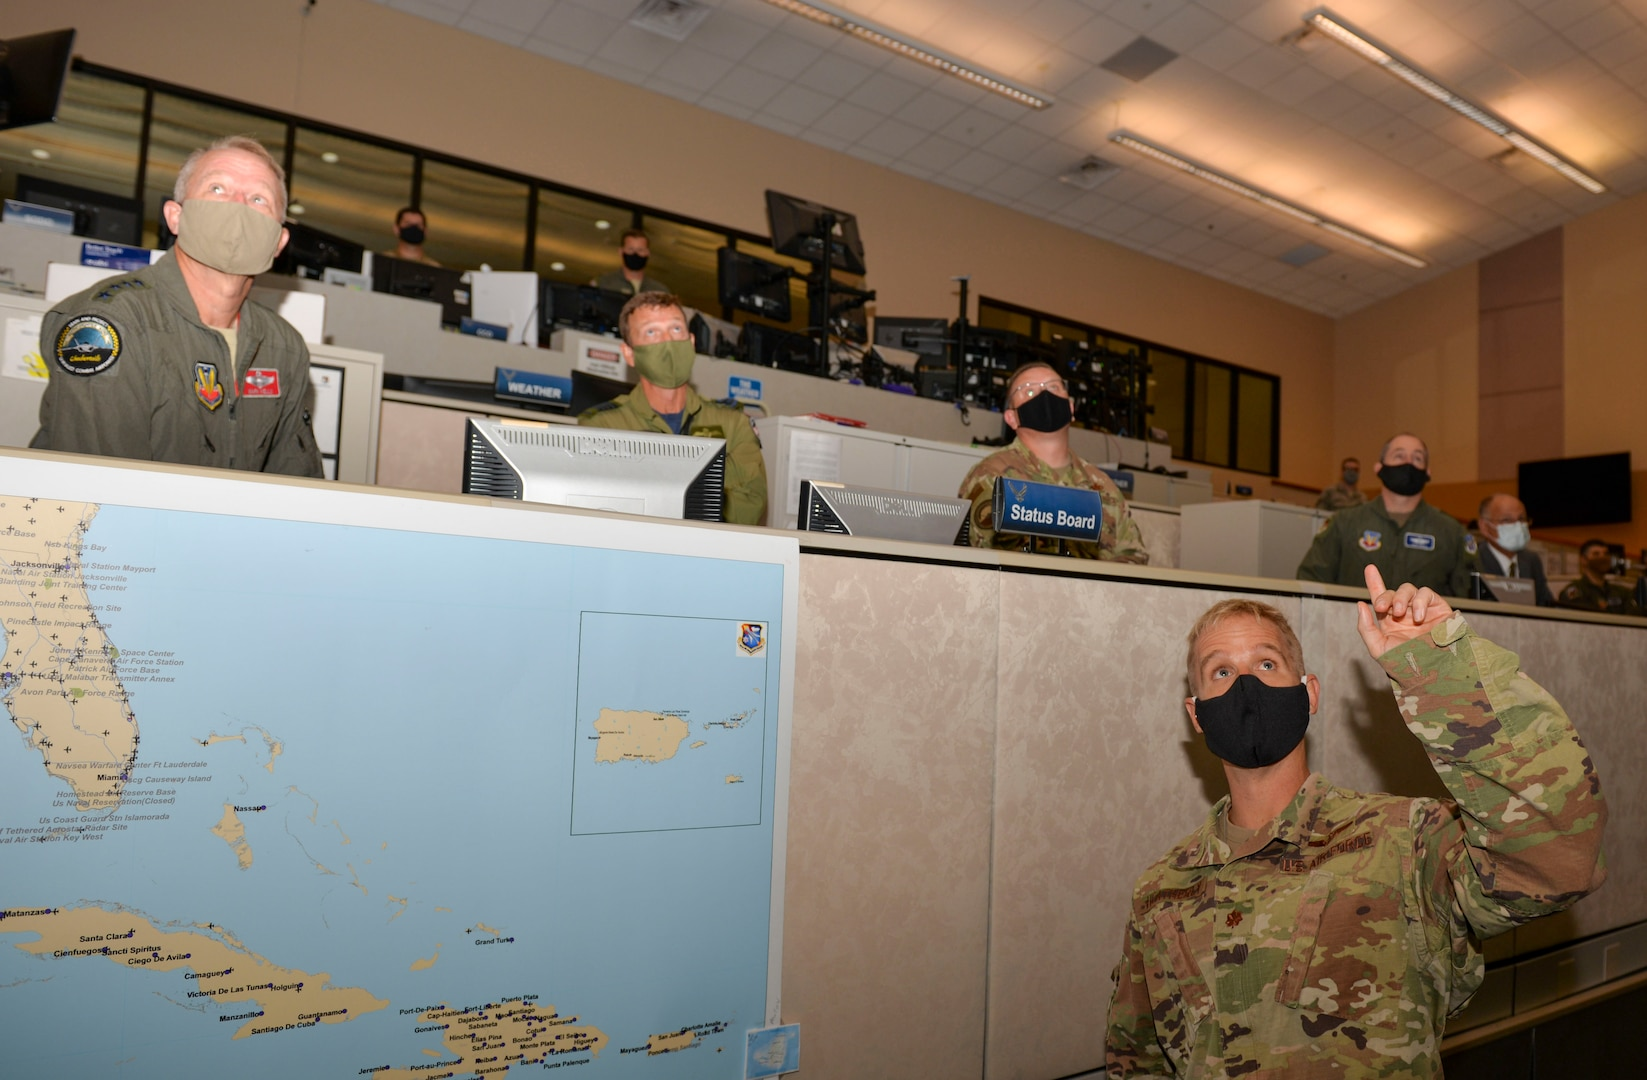 U.S. Air Force Maj. John Heatherly, 601st Air Operations Center Combat Plans Division, briefs U.S. Air Force Gen. Mark Kelly, commander of Air Combat Command, and U.S. Air Force Chief Master Sgt. David Wade, the command chief of Air Combat Command, on how the AOC conducts missions throughout the continental United States during a visit to Tyndall Air Force Base, Florida, Sept. 29, 2020.